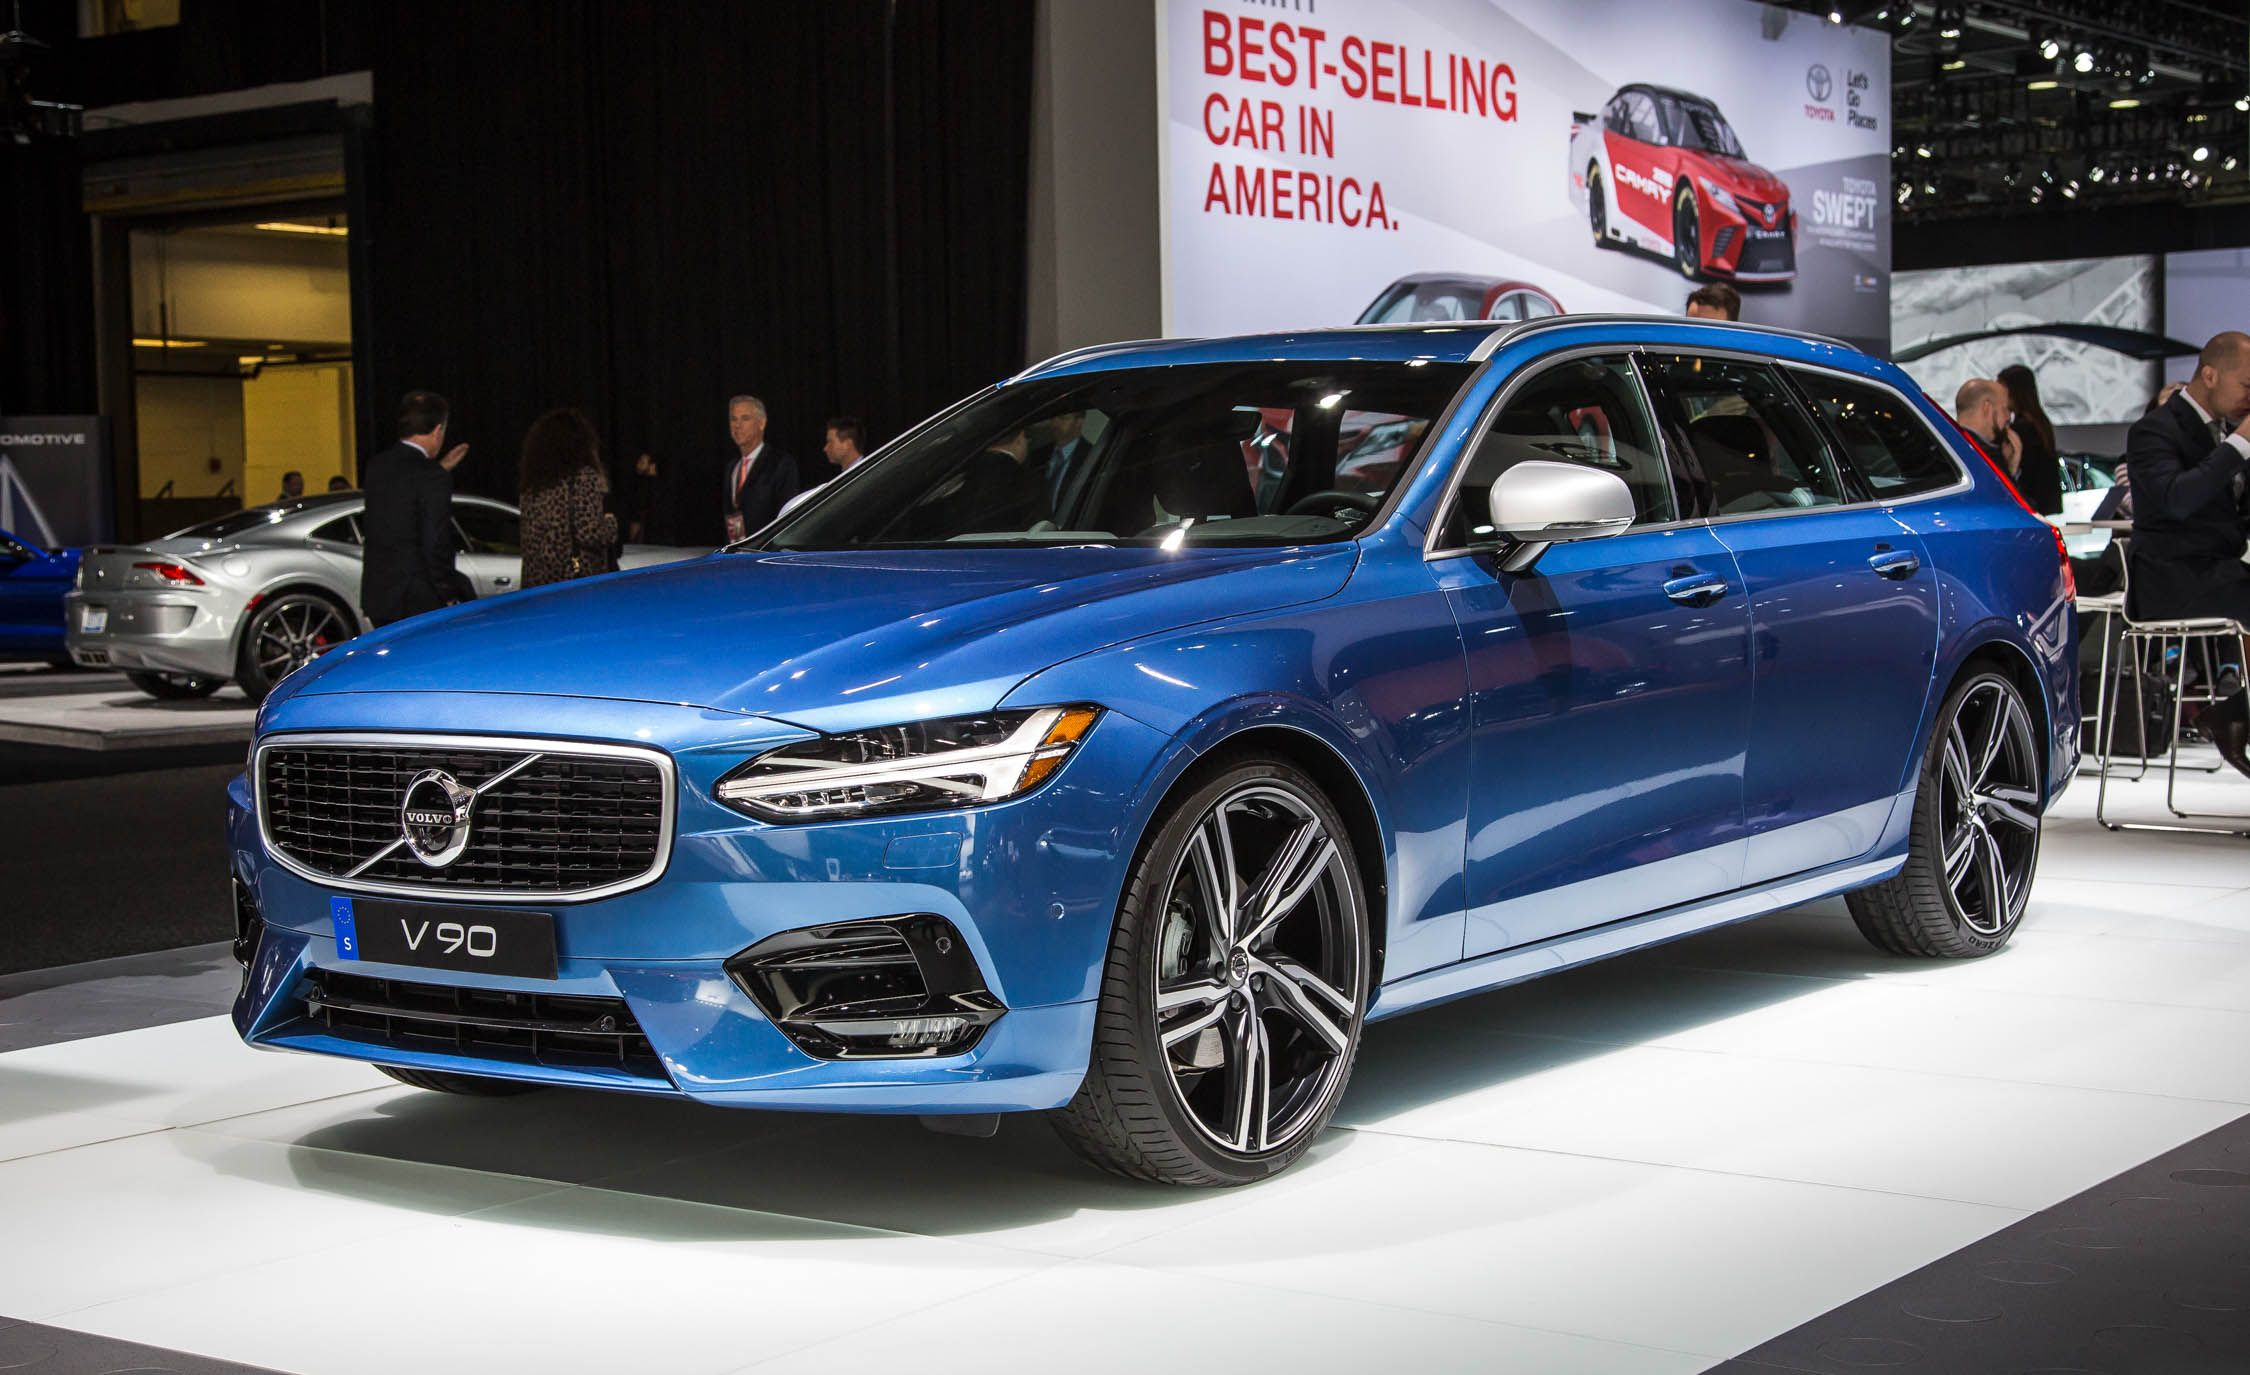 2018 volvo images.  volvo 2018volvov90rdesignplacement throughout 2018 volvo images